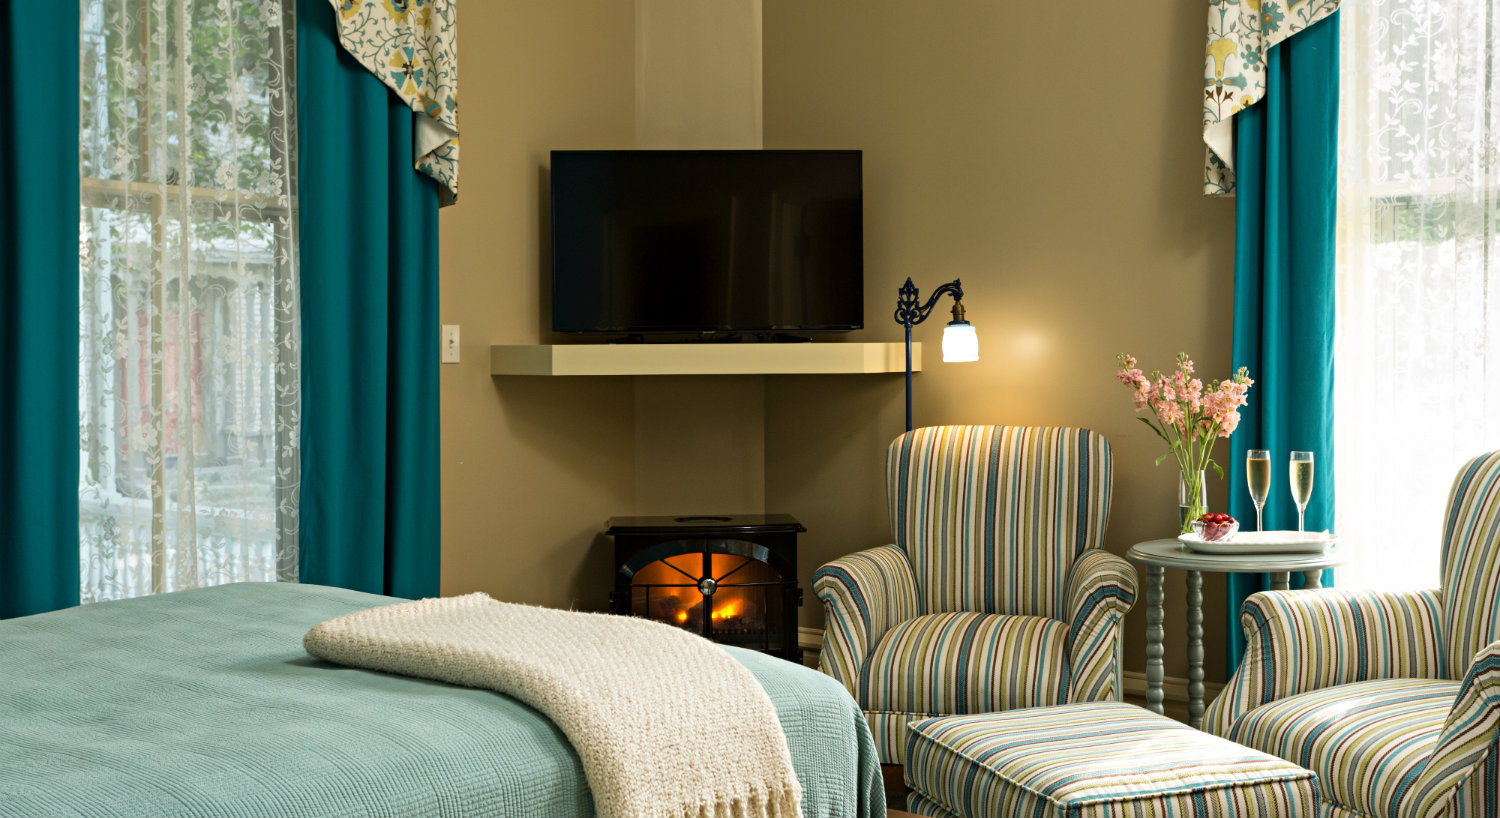 Serene guest room decorated in shades of aqua including a bed and a seating area with wingback chairs and an ottoman.